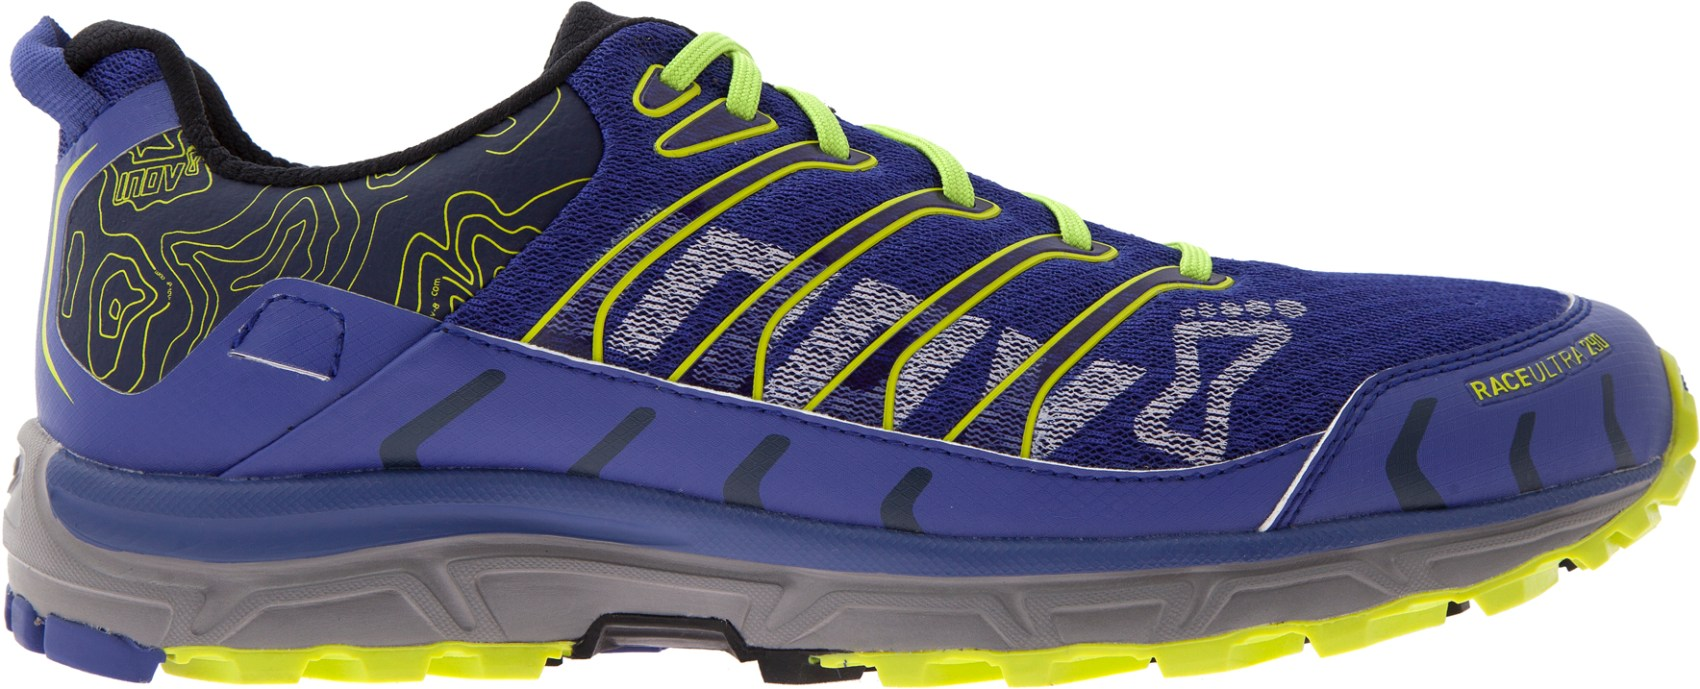 Wiggle   Inov-8 Race Ultra 290 Shoes - AW14   Training Running Shoes